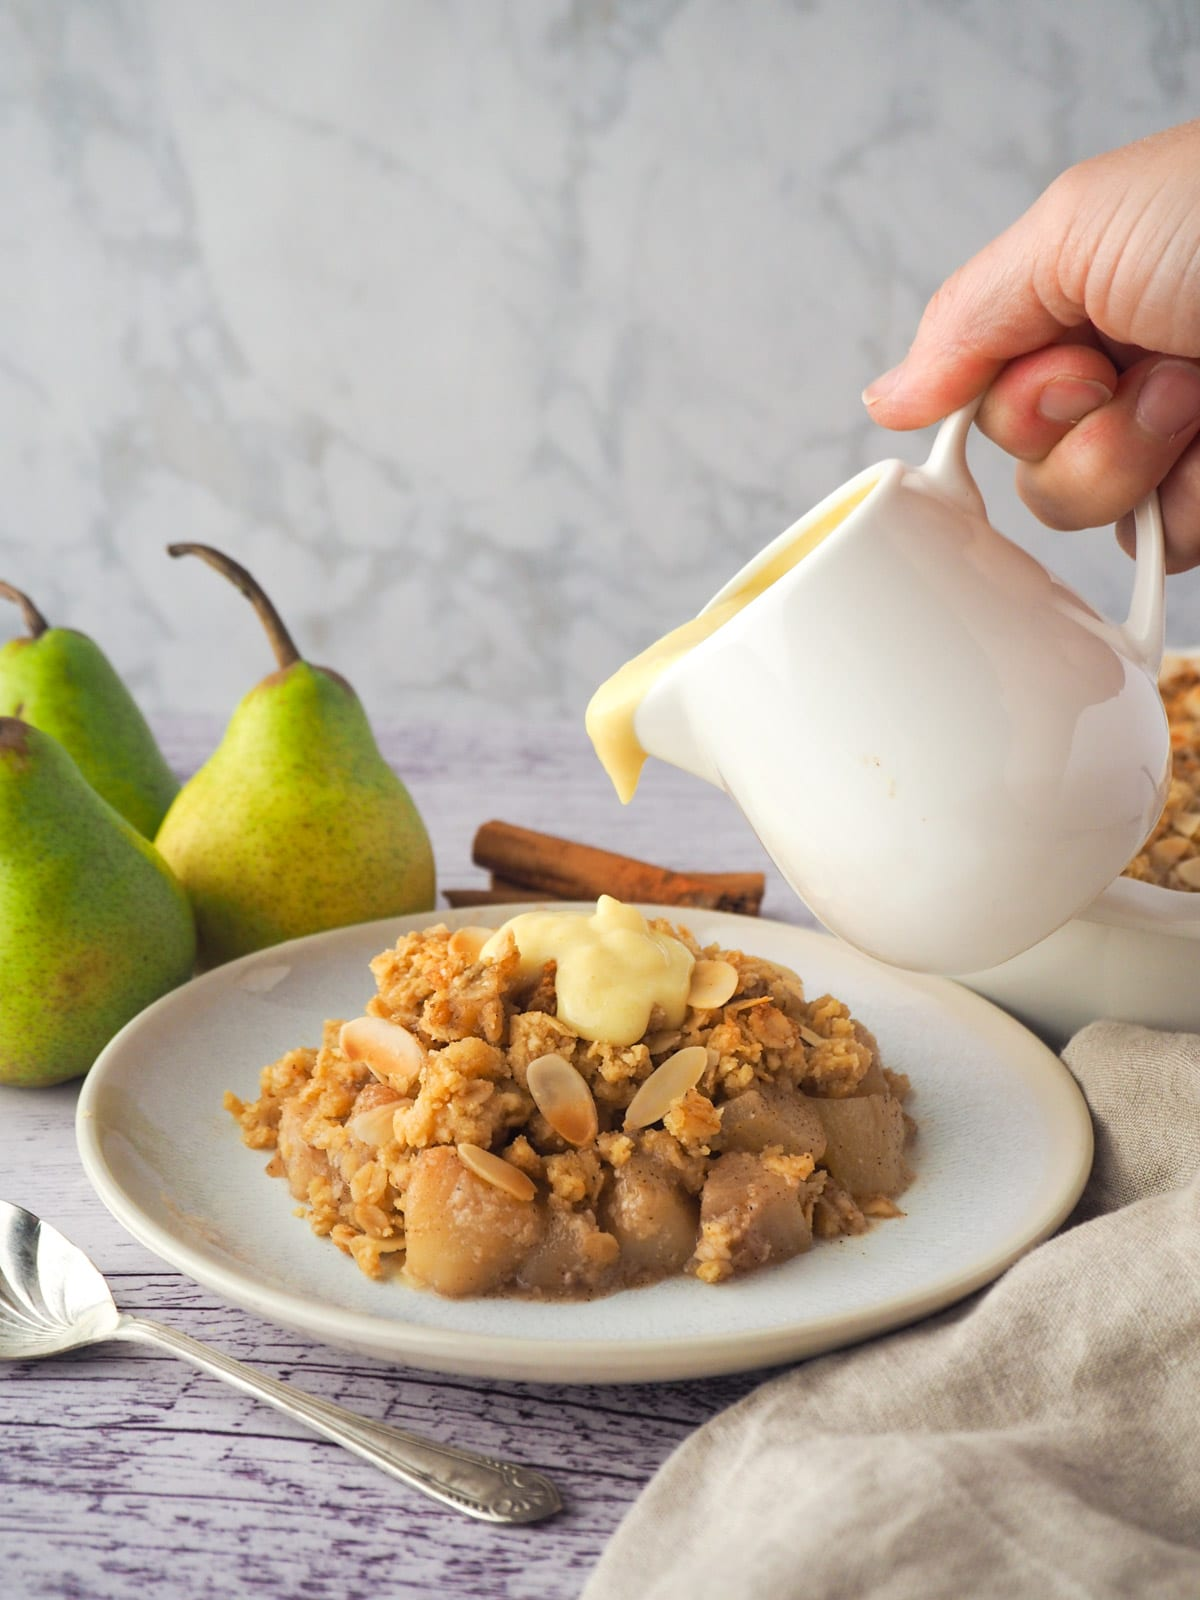 Serving of pear crumble with custard being poured over the top, with fresh pears, cinnamon stick and crumble in baking dish in background.